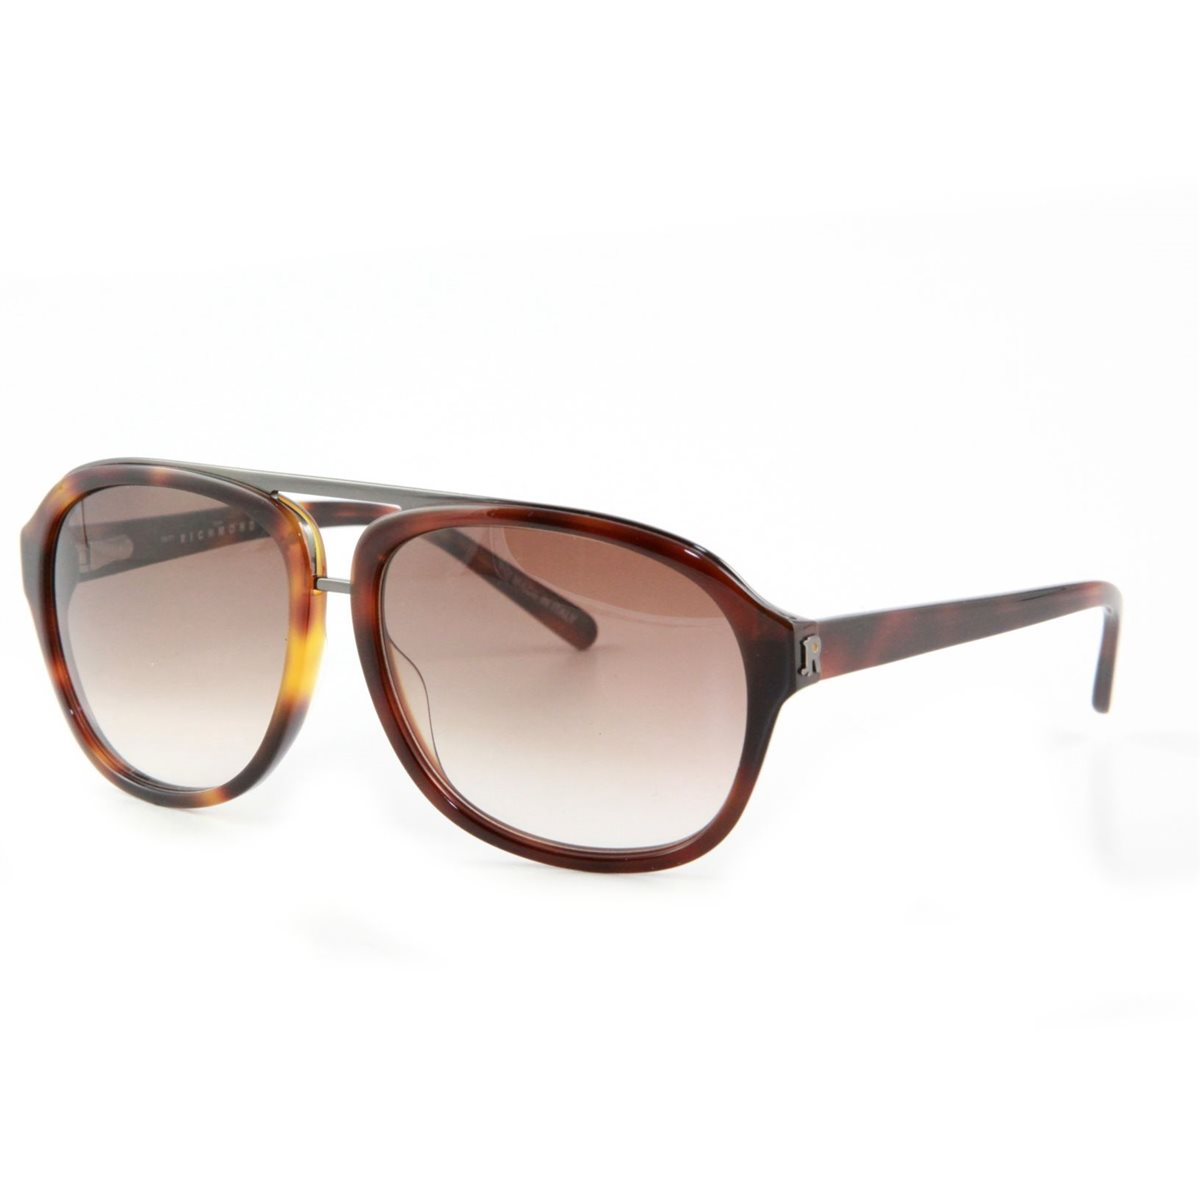 John Richmond Unisex Sunglasses Brown Visor Patt retro ...